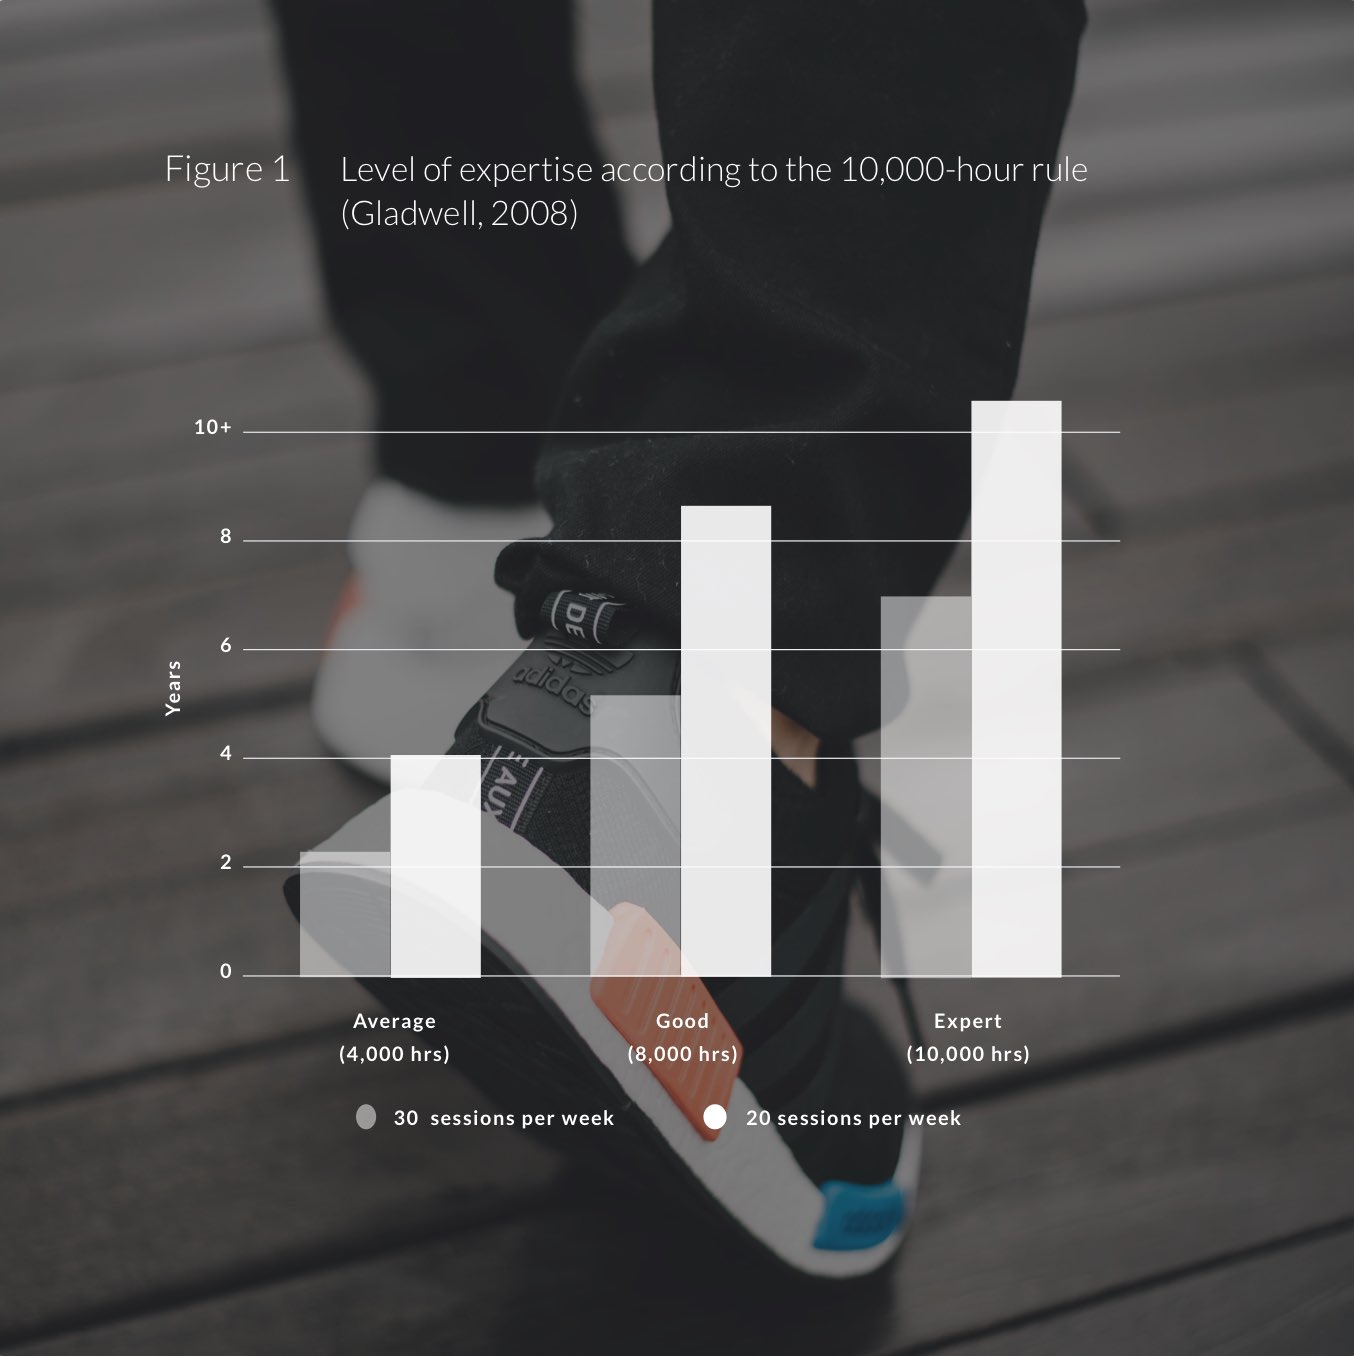 Graph showing the level of expertise of personal trainers